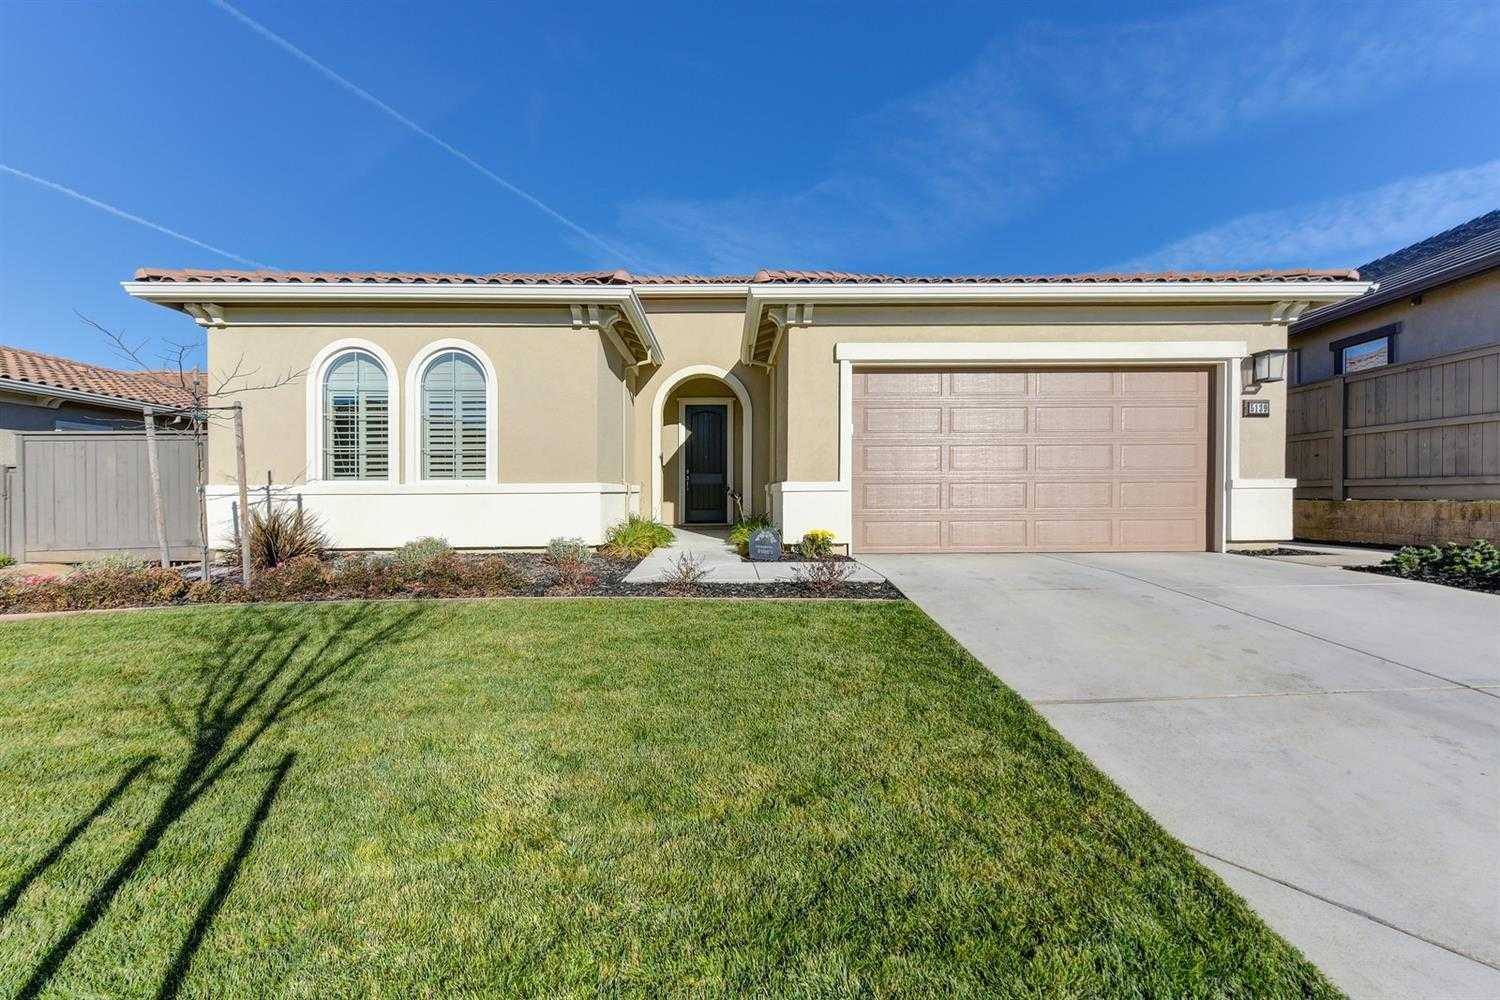 5139 Brentford Way El Dorado Hills, CA 95762